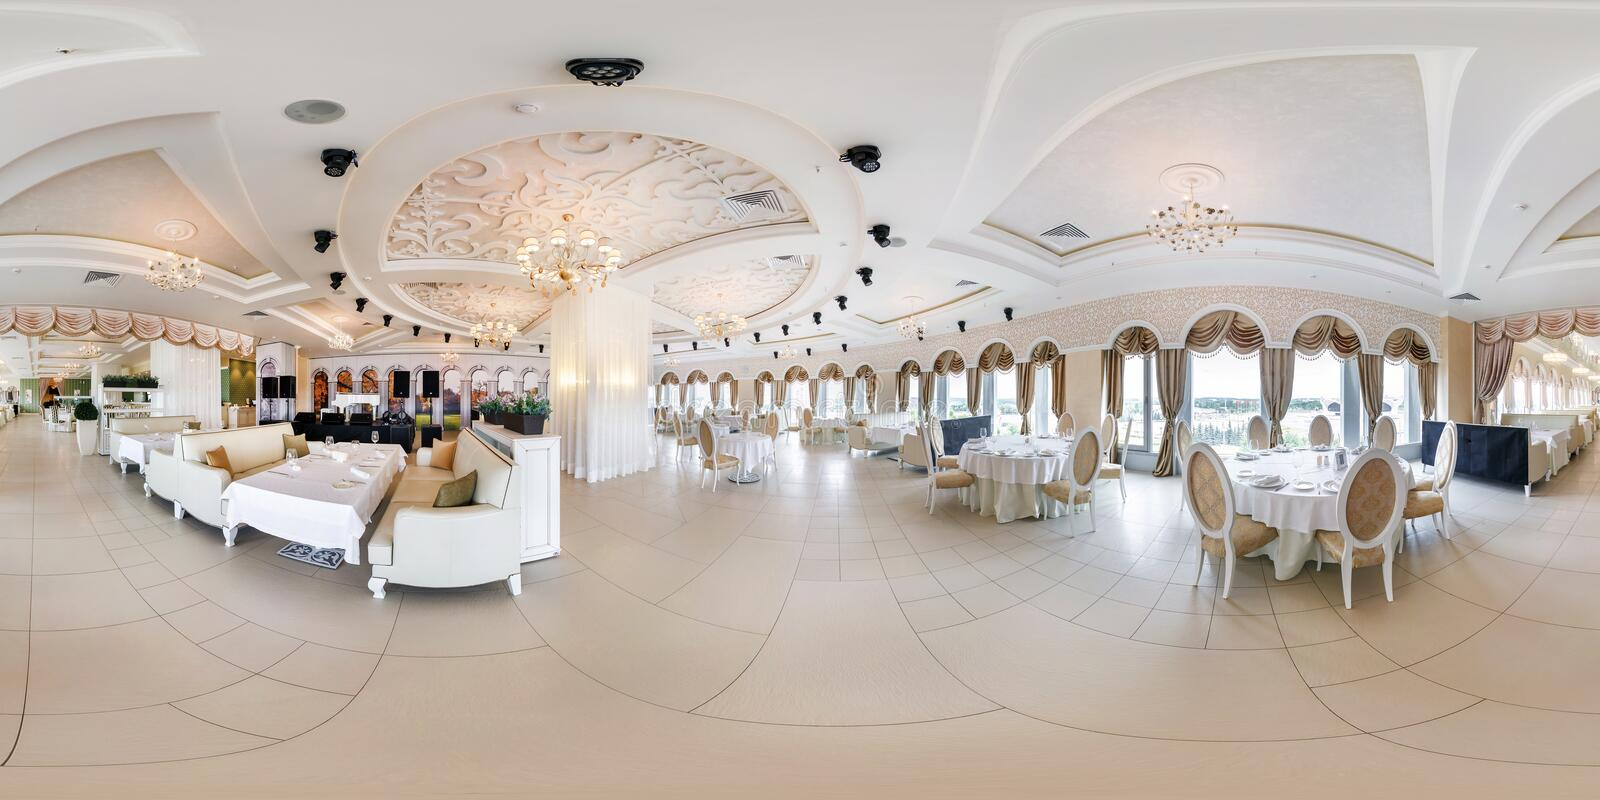 MINSK, BELARUS - JUNE, 2015: Full spherical seamless panorama 360 degrees angle view in interior of stylish modern restaurant stock photography